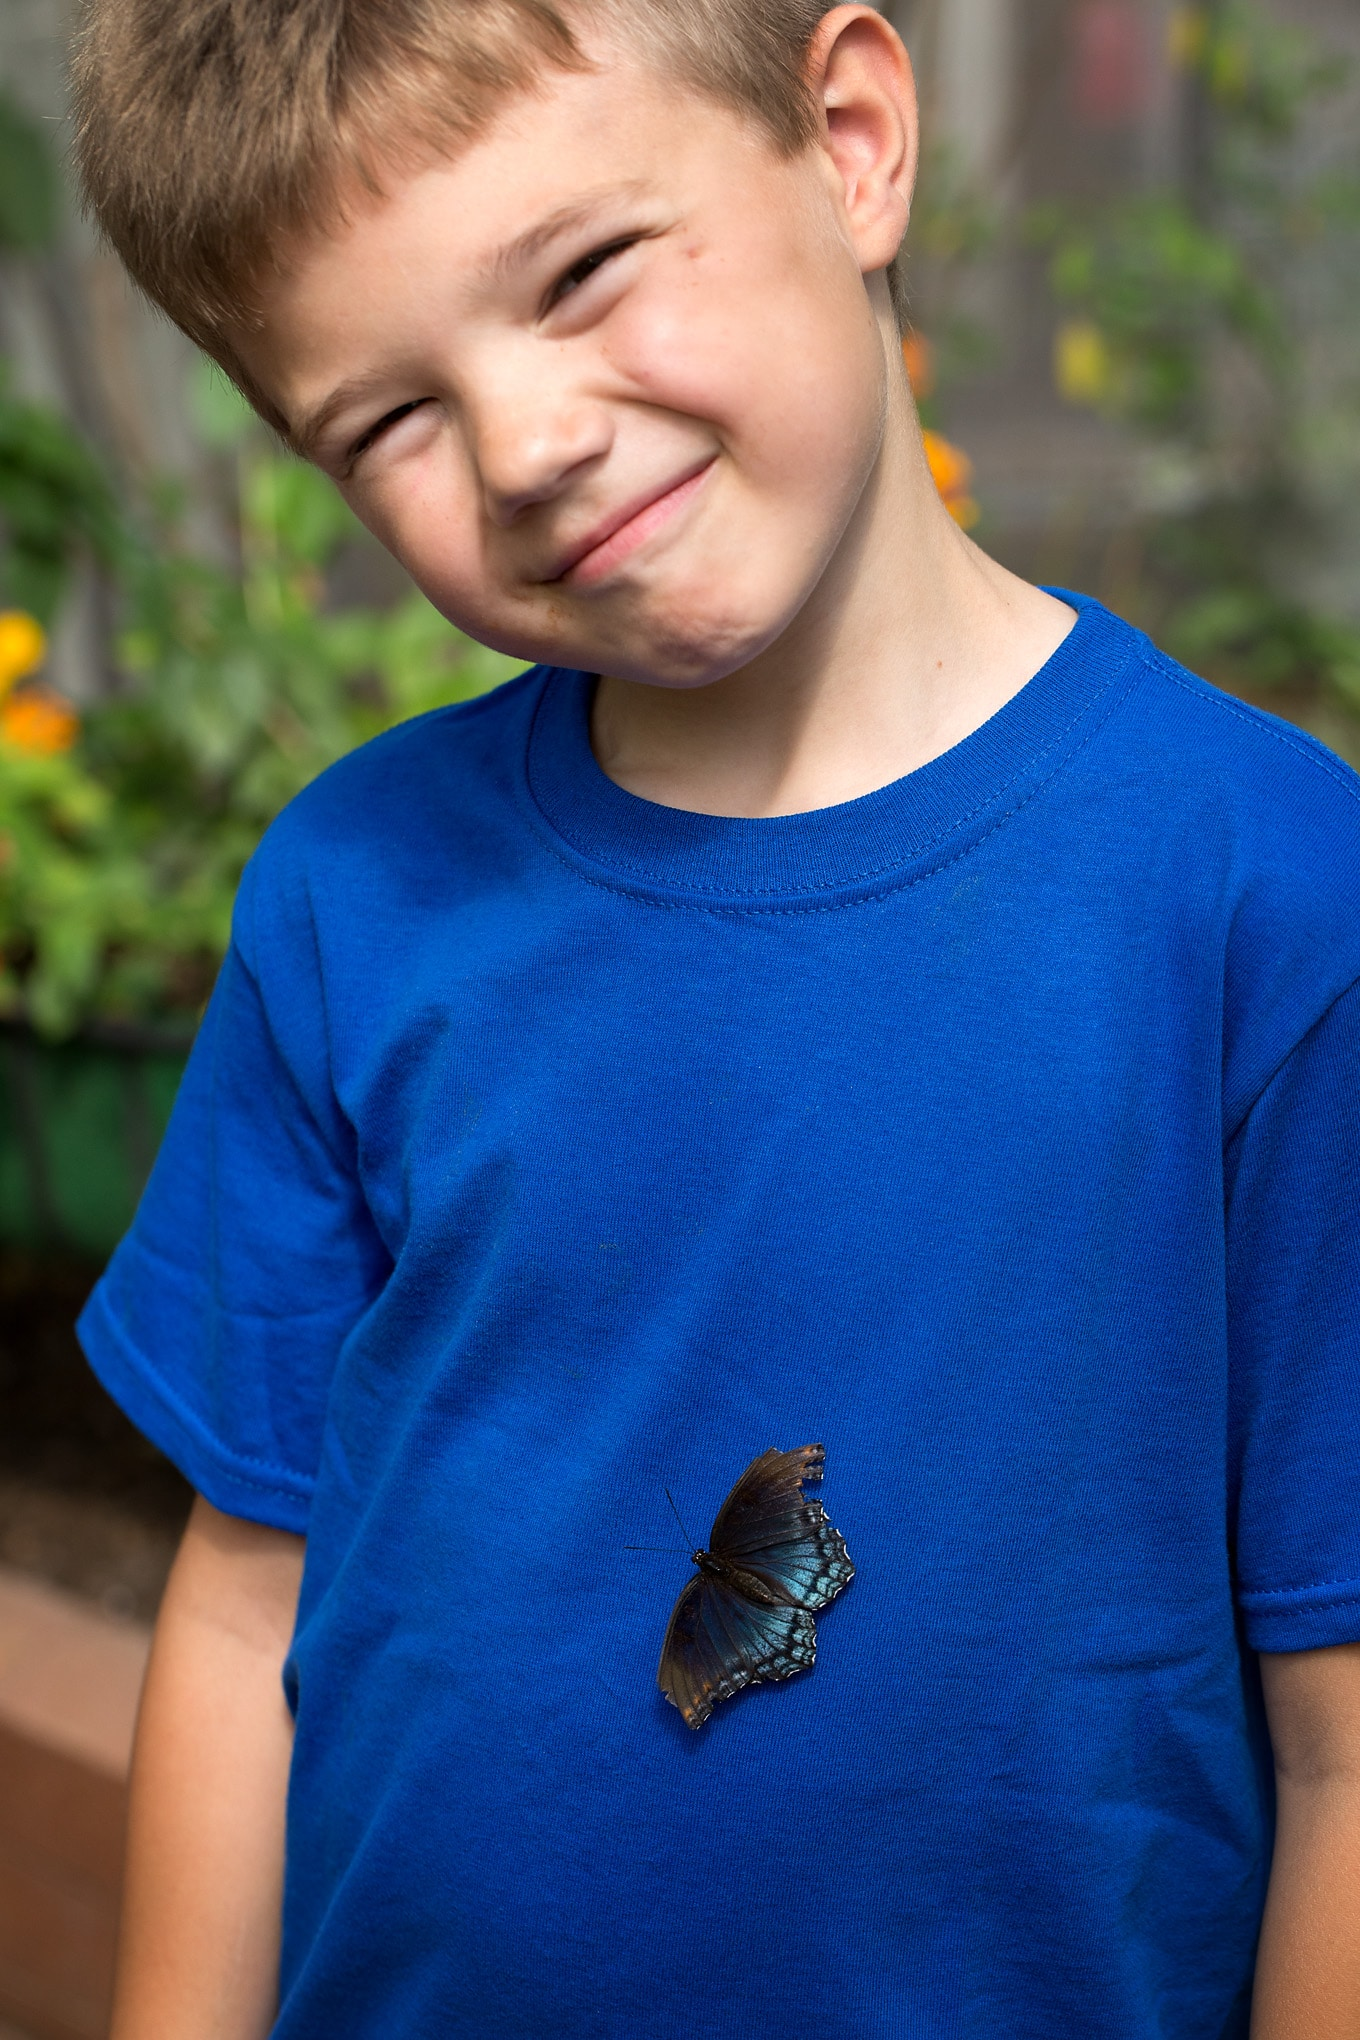 Child With Butterfly On His Shirt